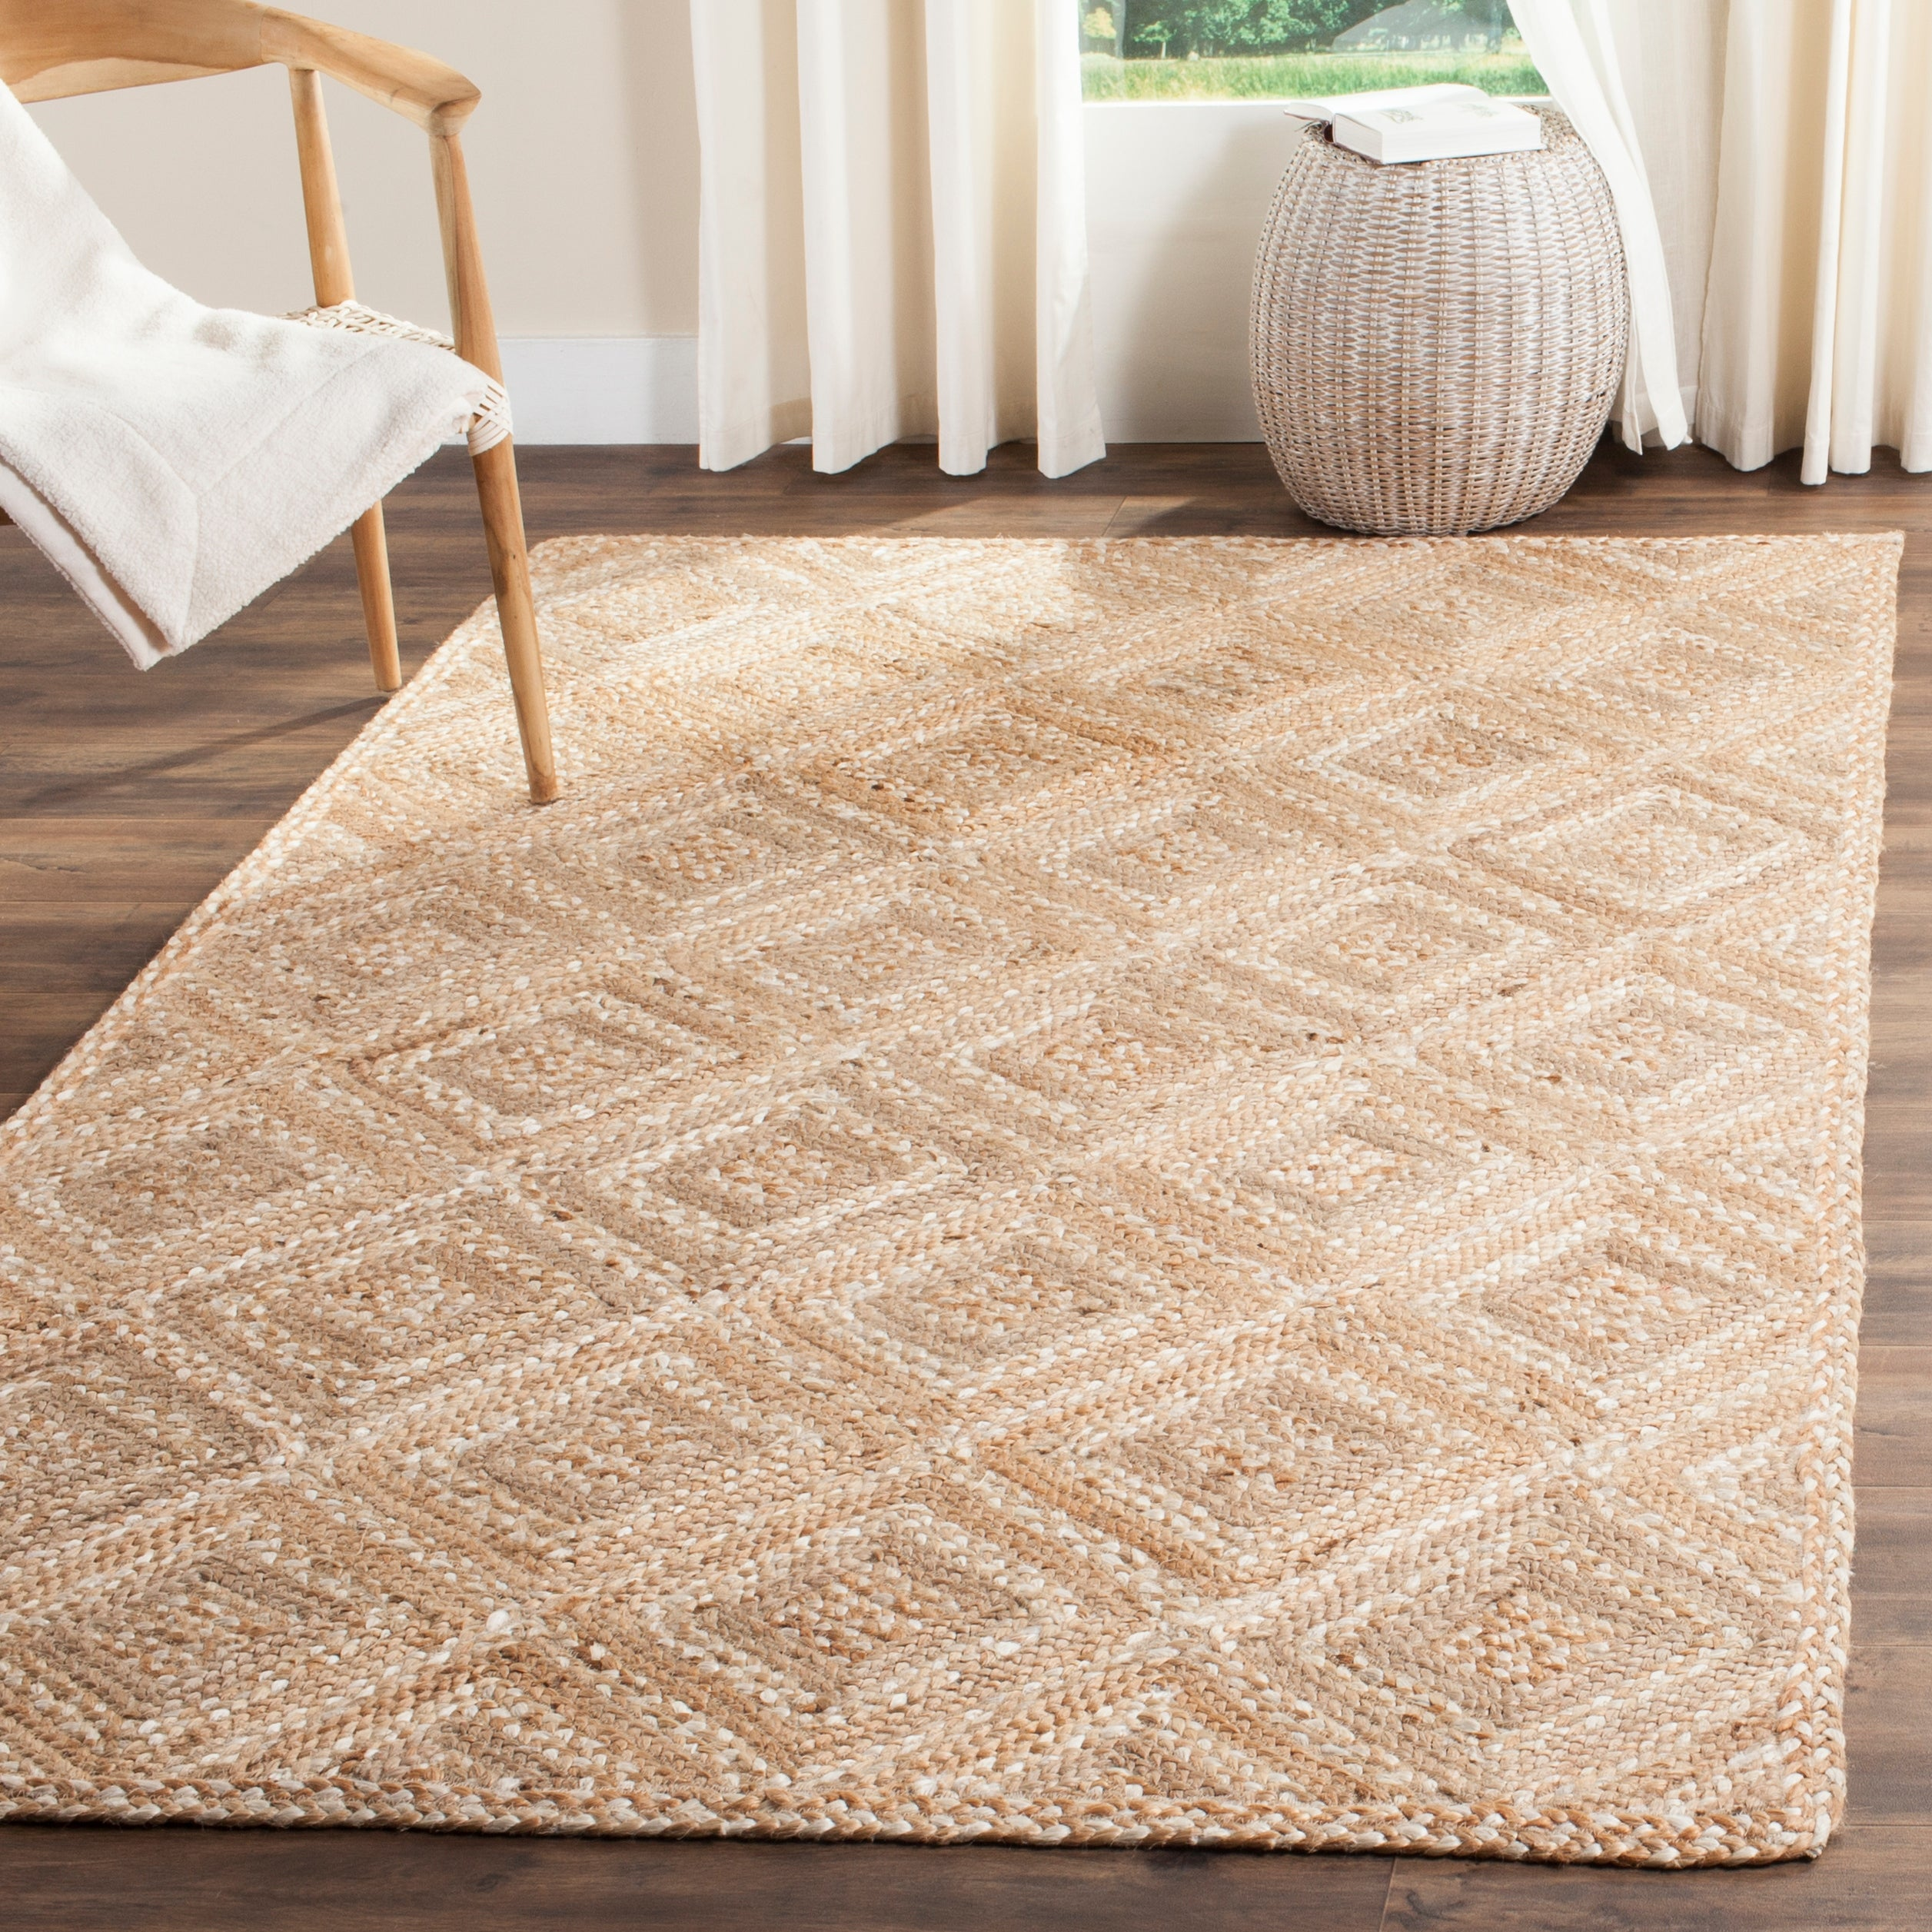 Remove Smell from Jute Rug